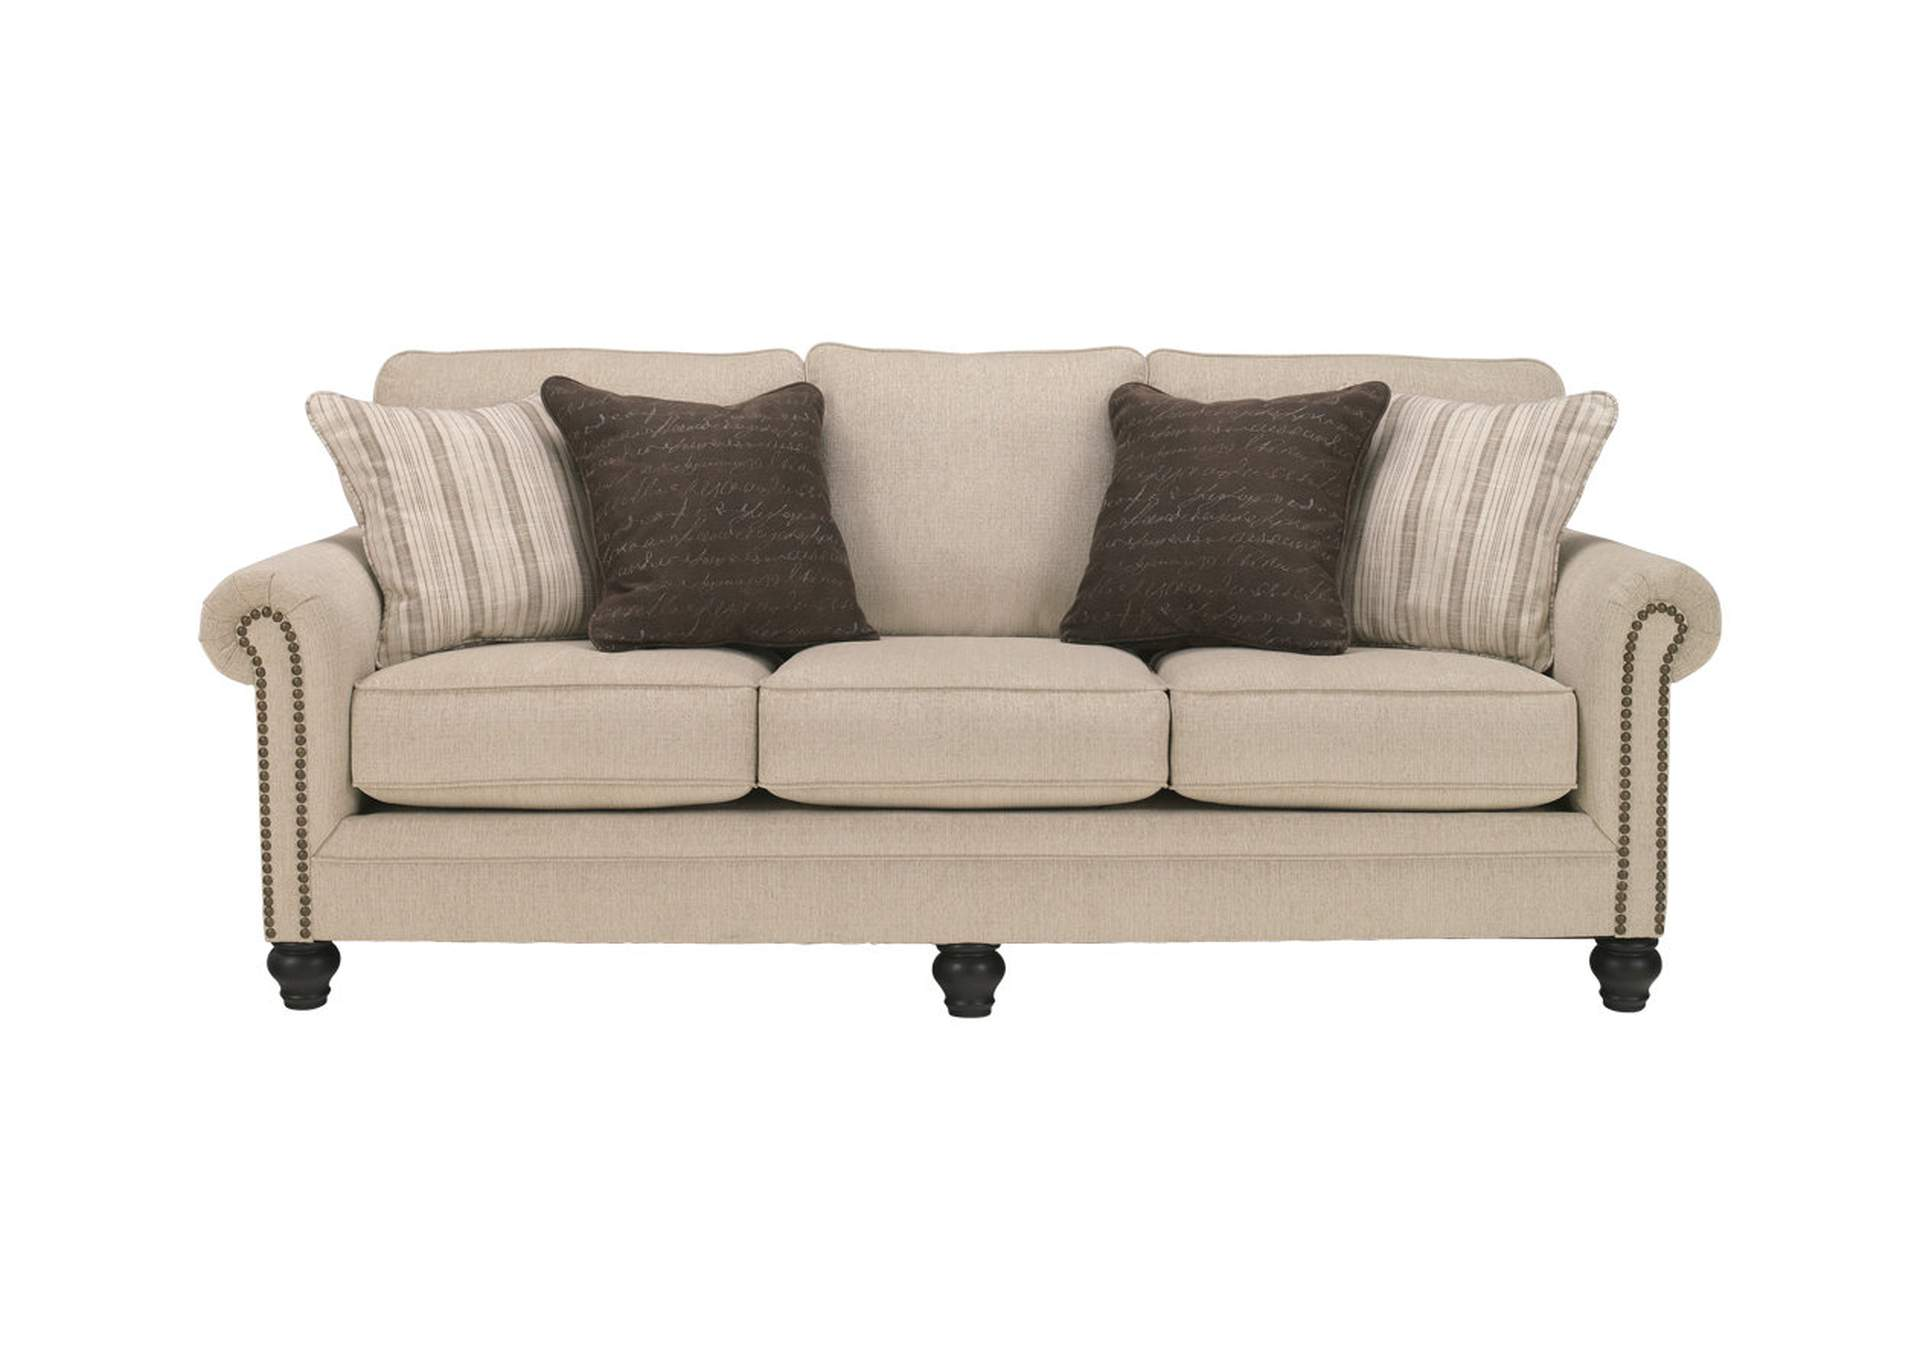 Milari Linen Queen Sofa Sleeper,Signature Design By Ashley